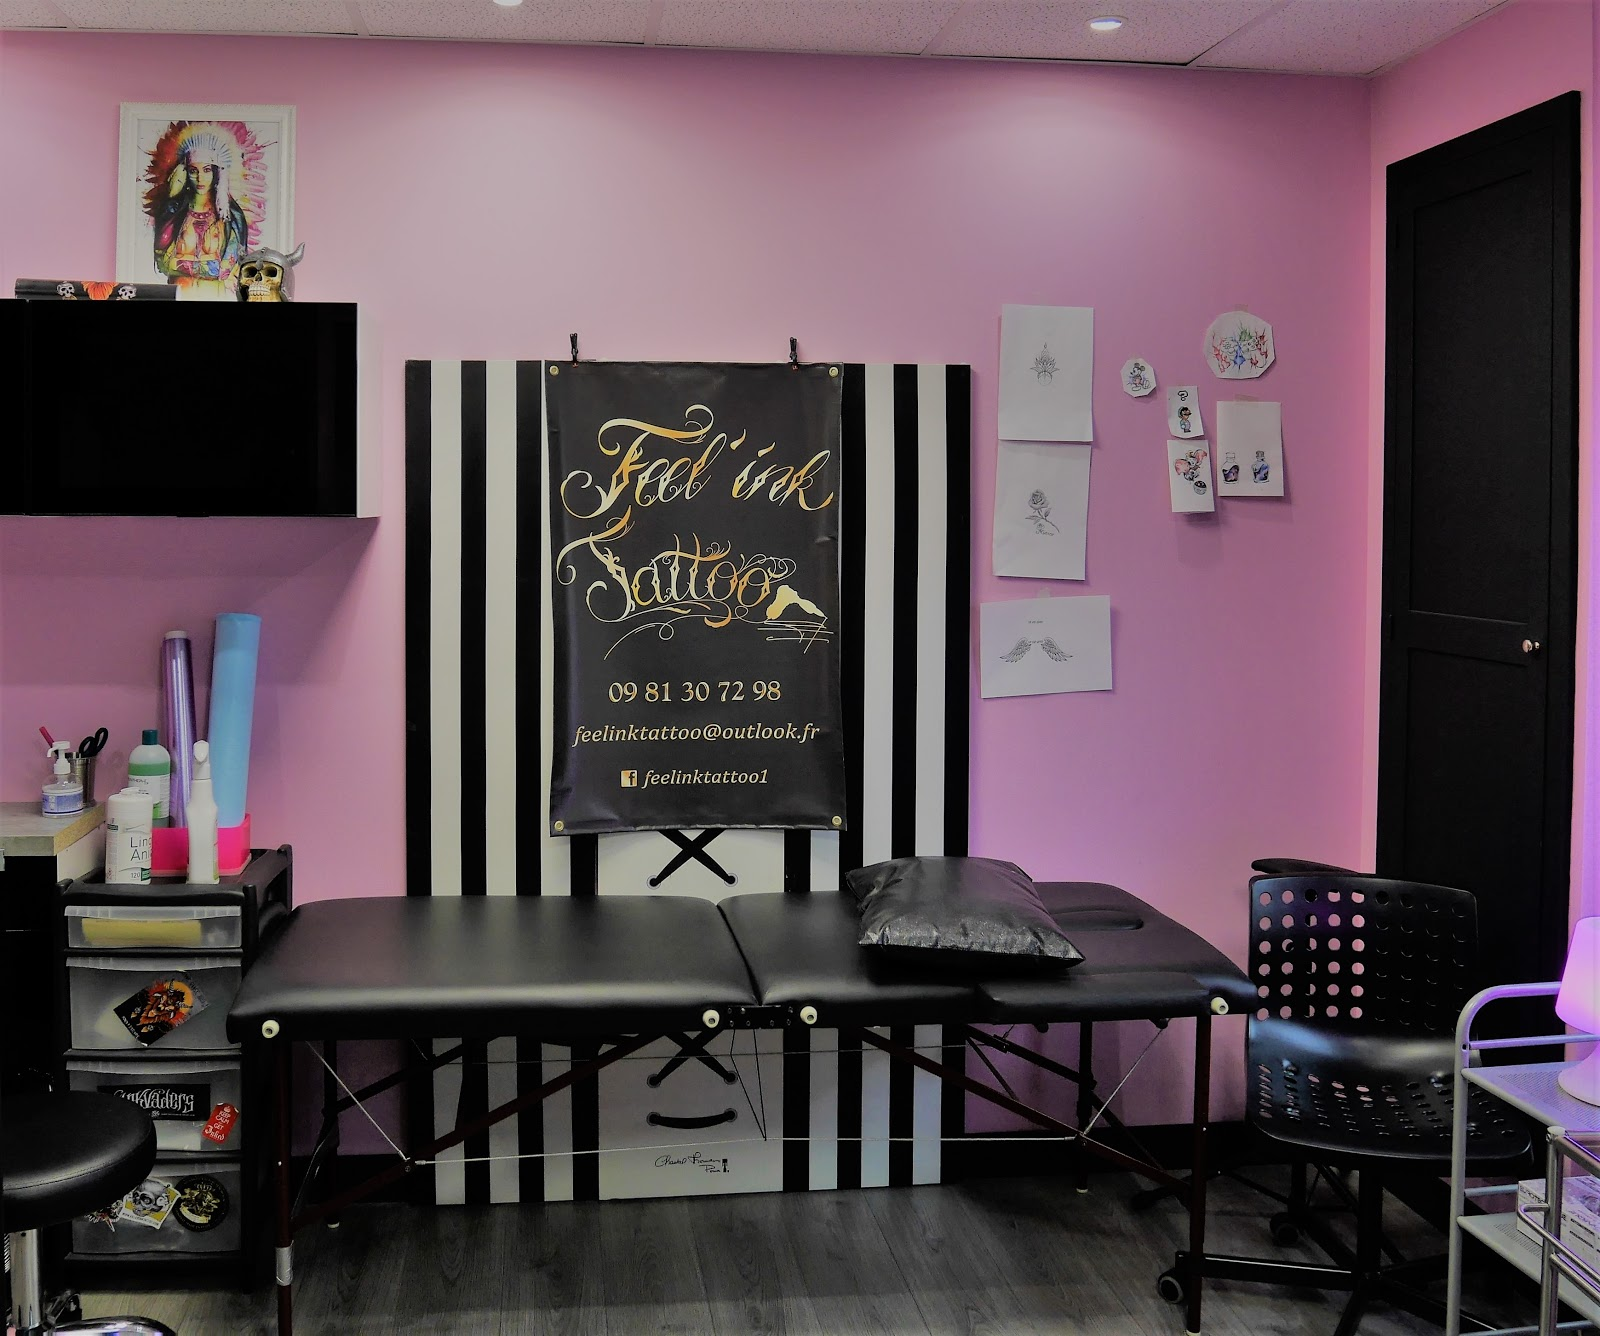 salle-tatouage-feel-ink-salon-de-tatouage-le-plessis-robinson-danslaruedacote.fr